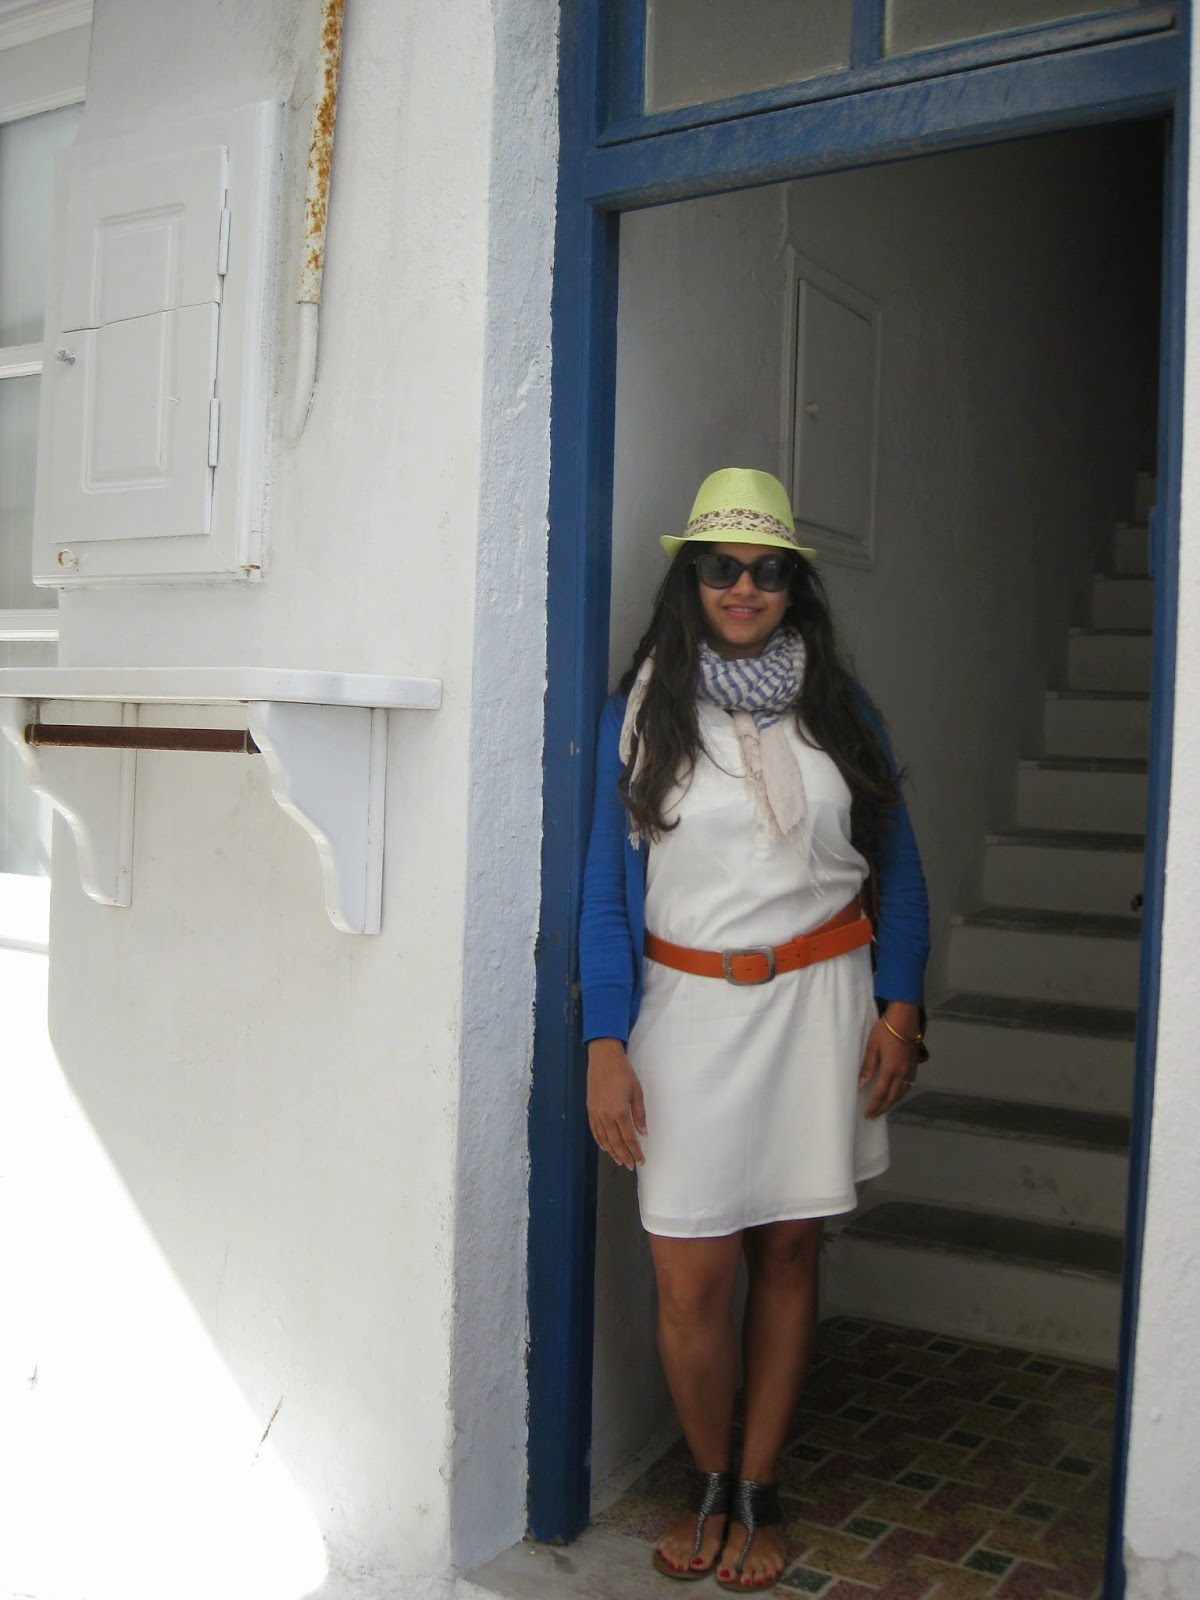 Mykonos - Trisha poses in one of the many doorways